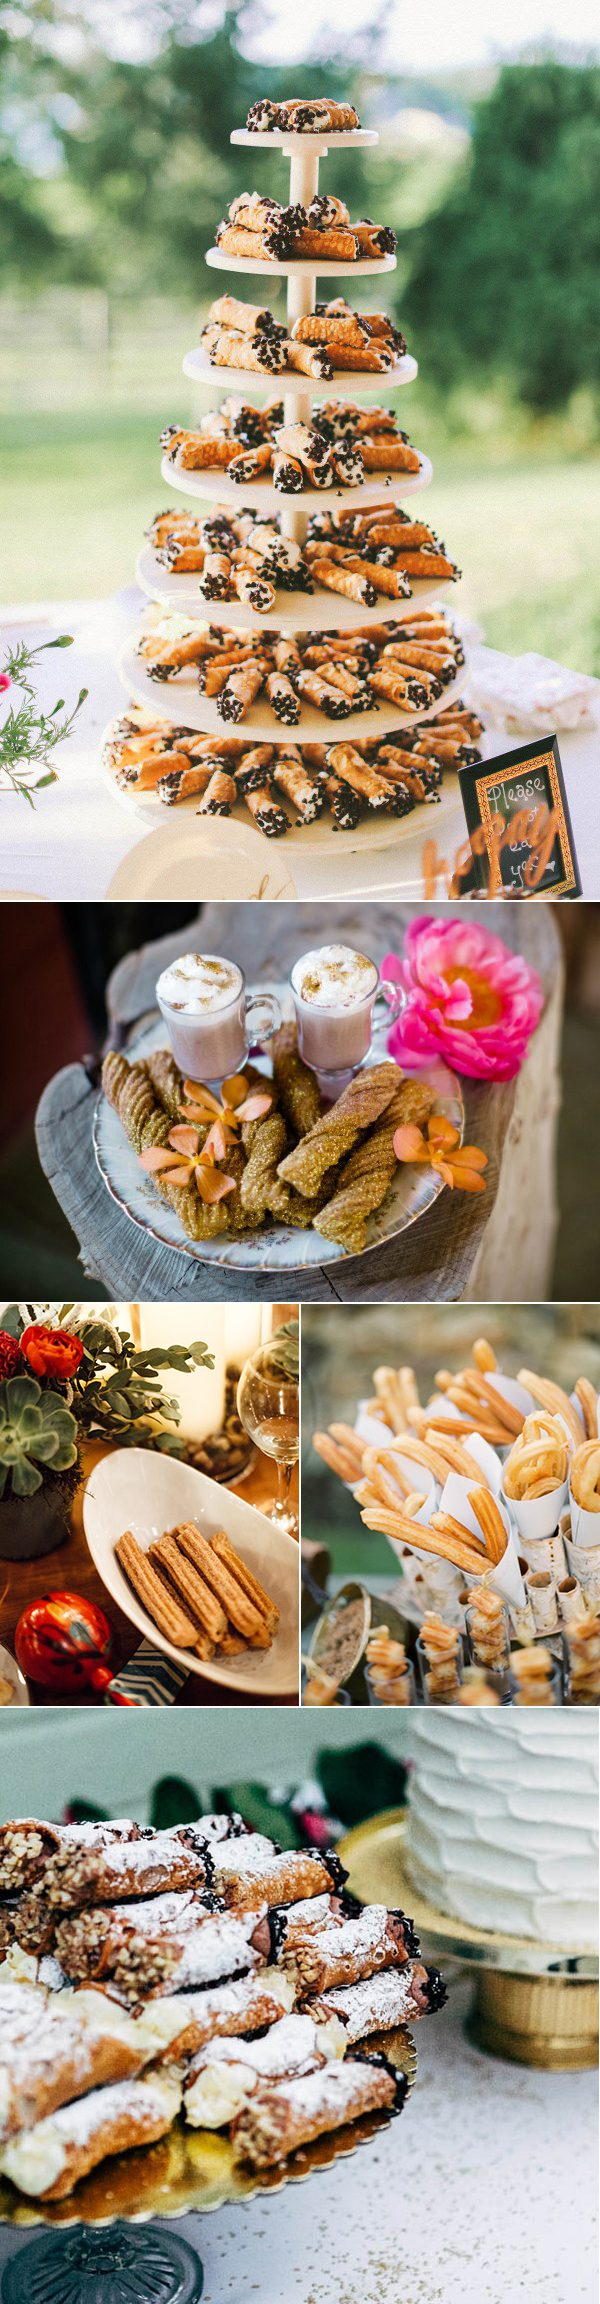 wedding-cannoli-eclair-churro-dessert-displays